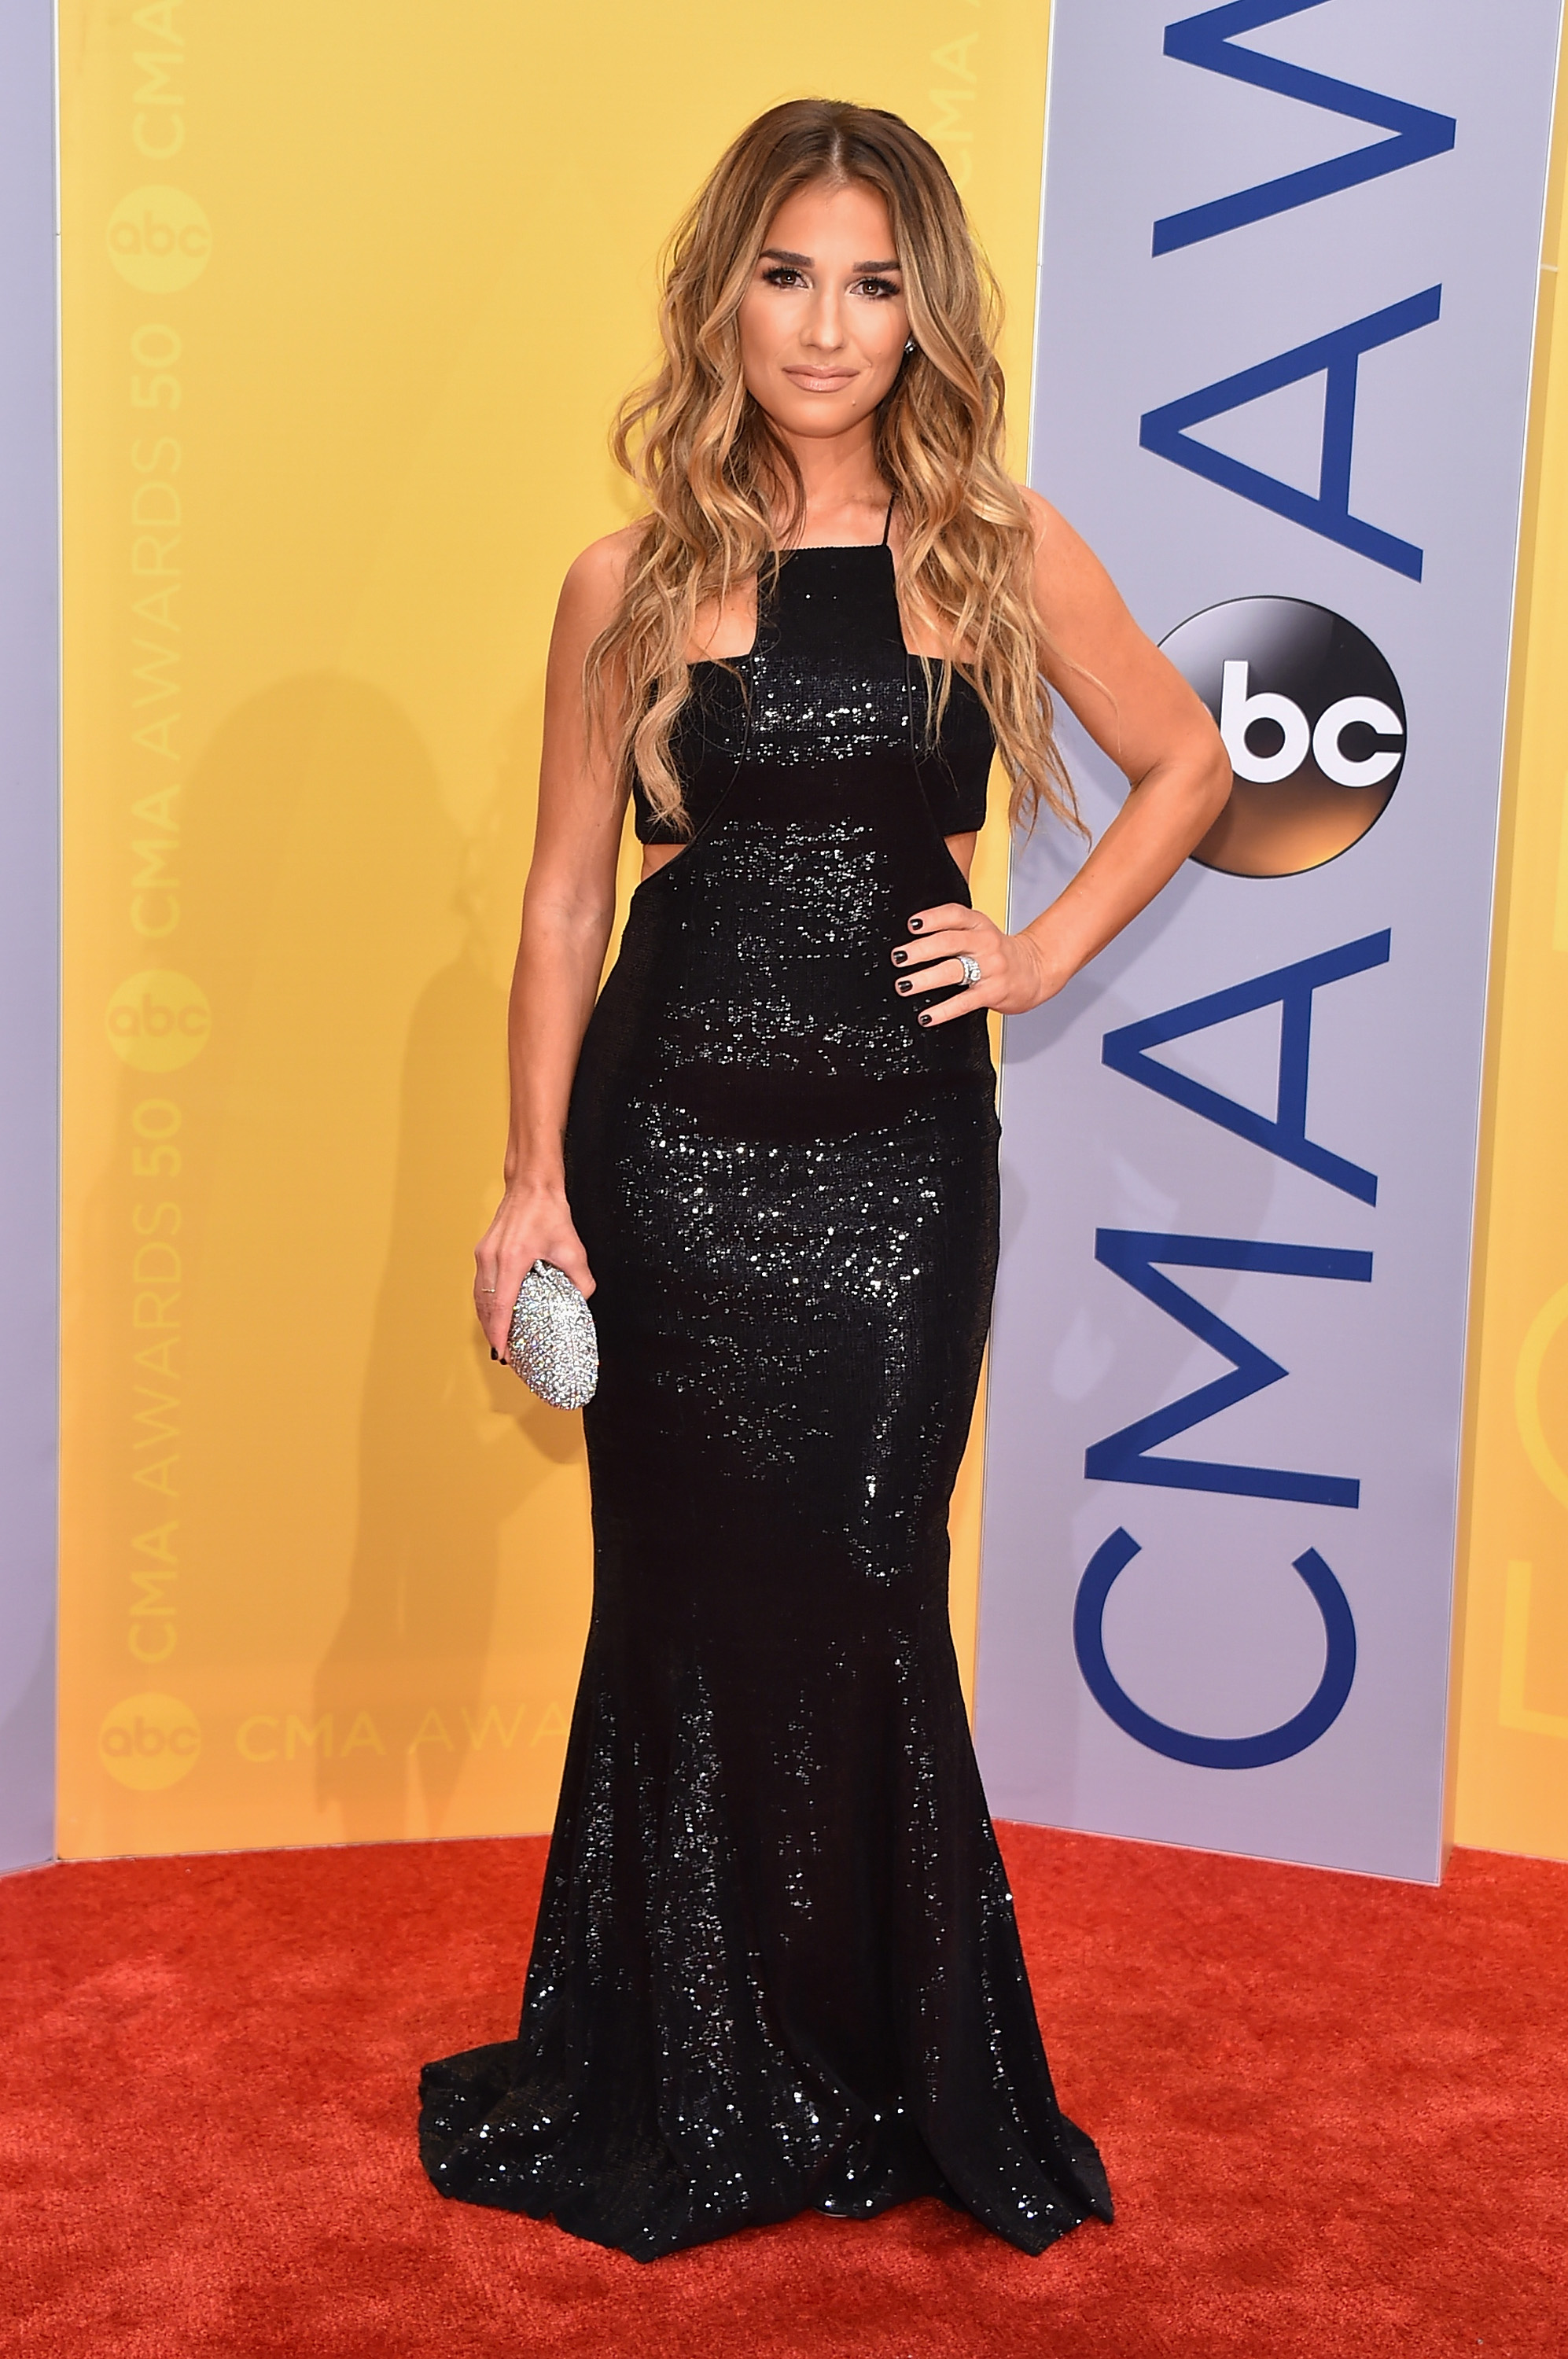 Jessie James Deckers 2016 Cmas Dress Brought Some Sparkle To The